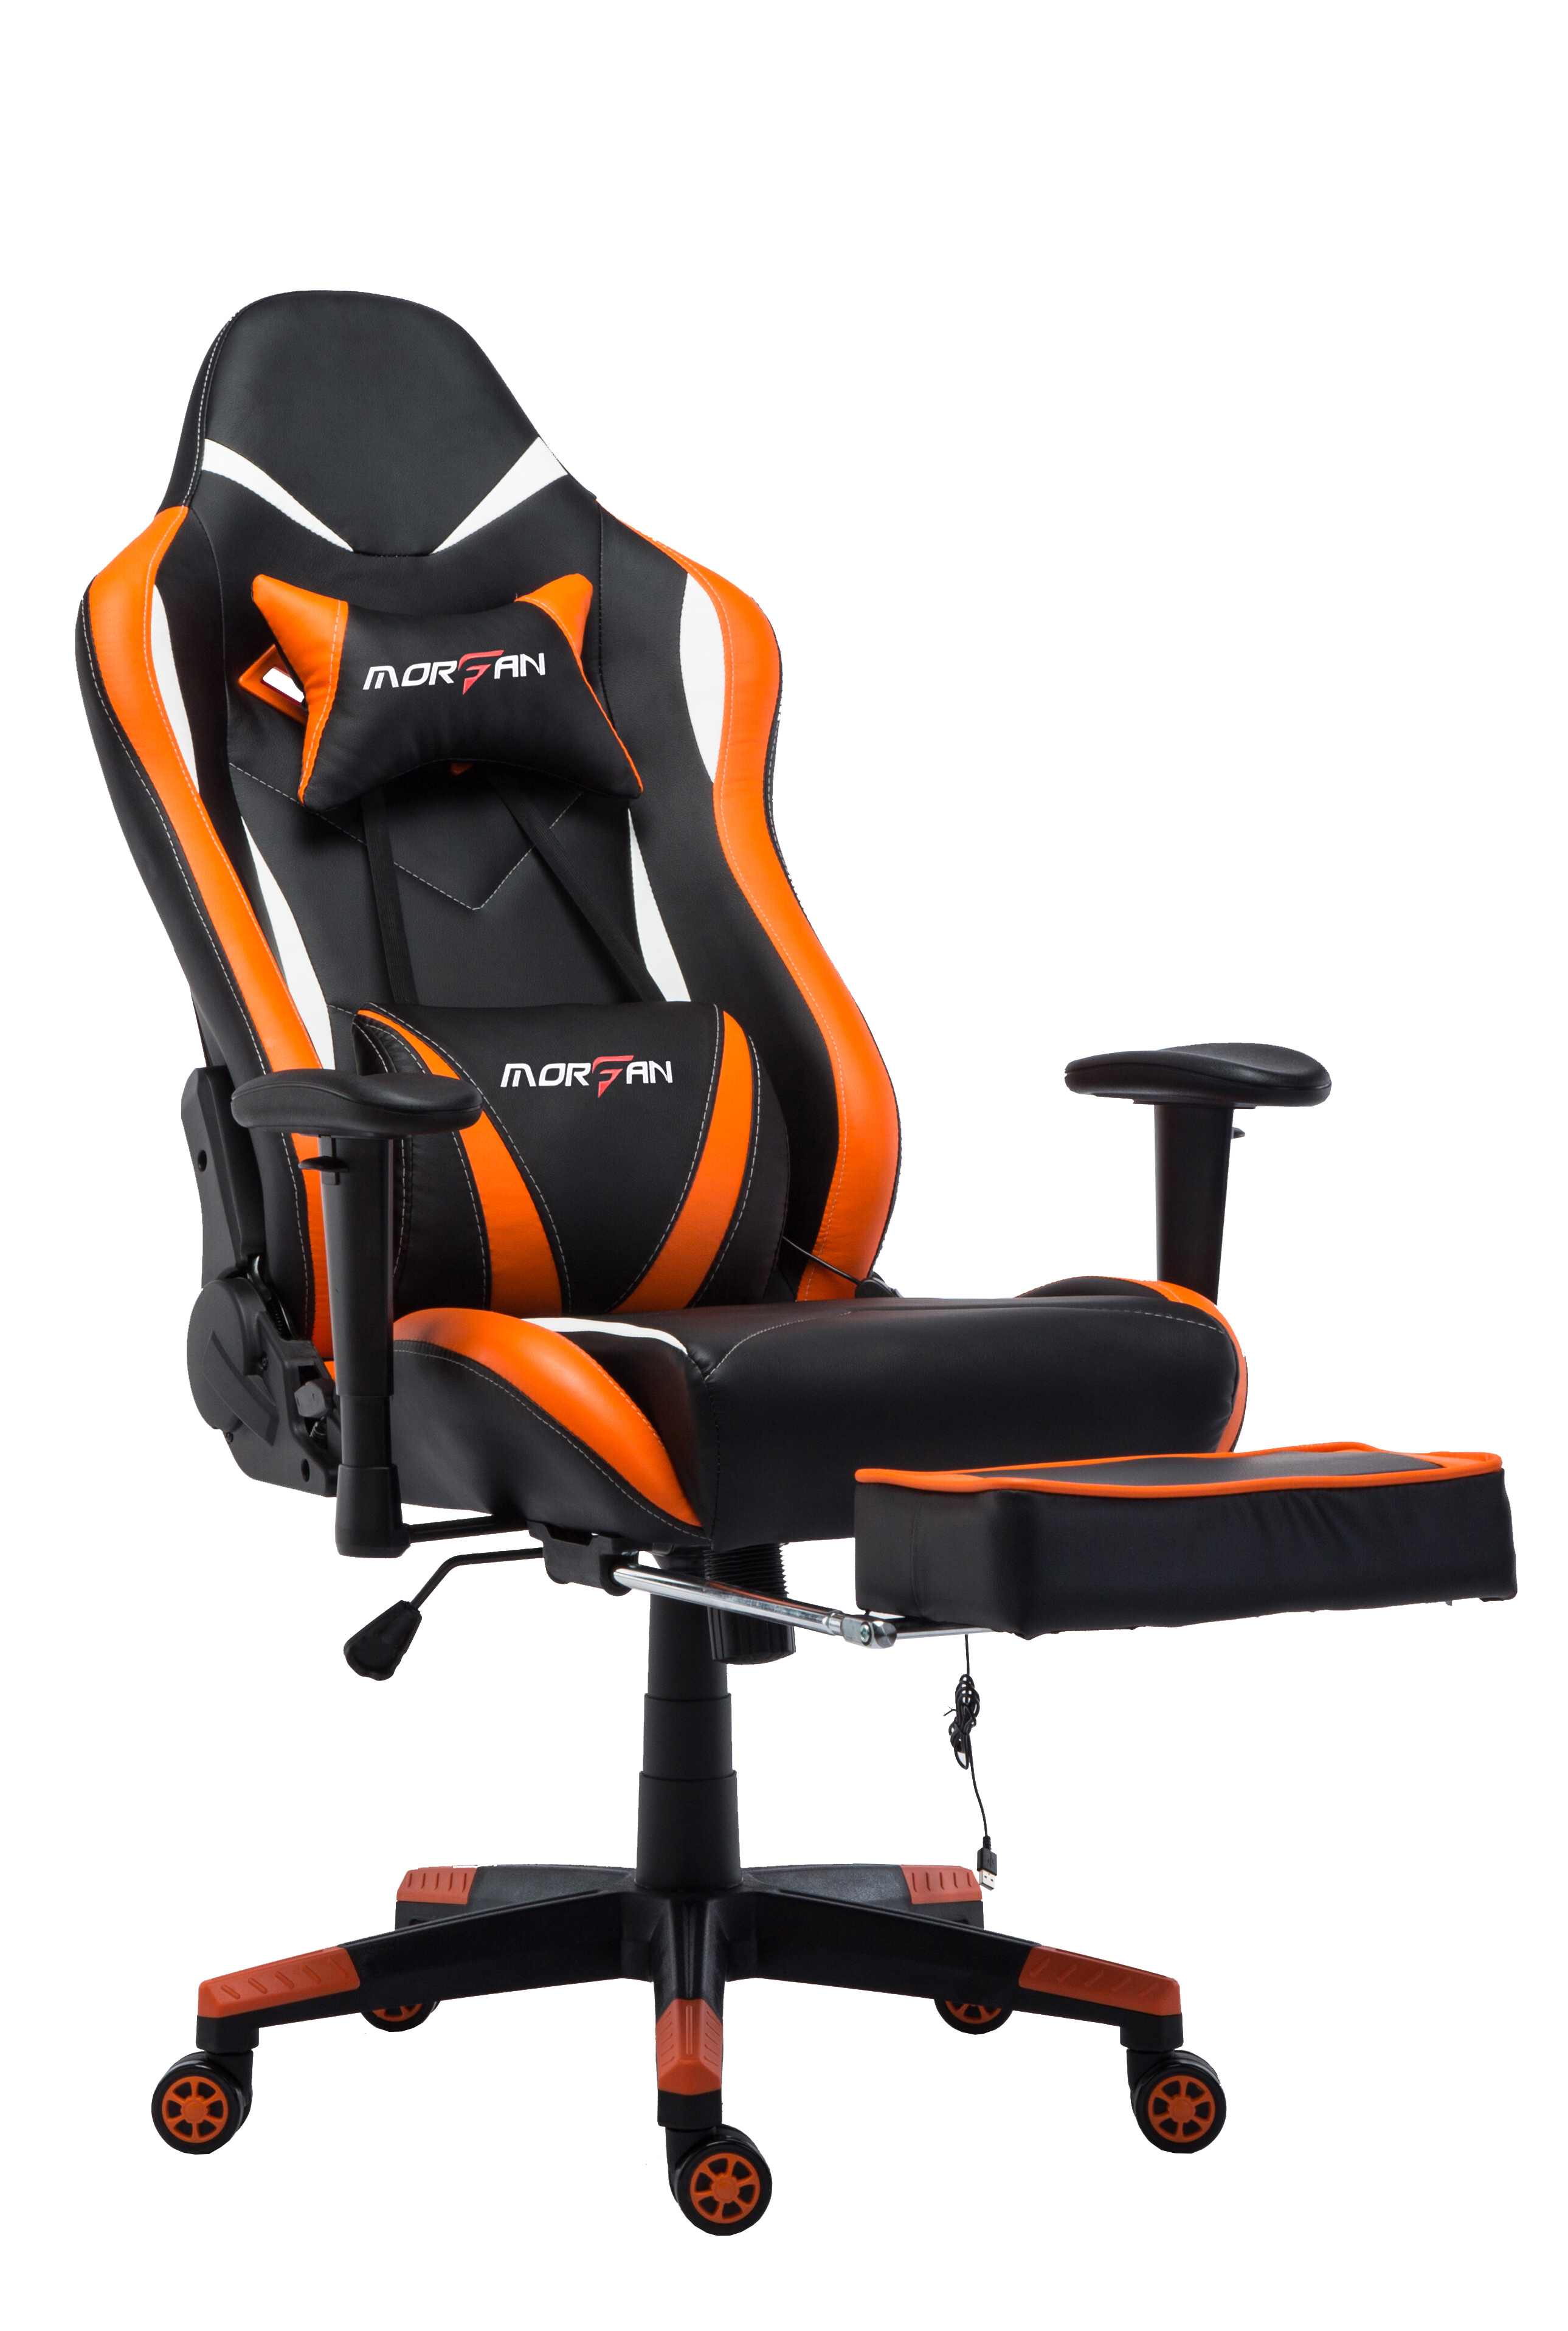 AKRCING Solitude Office Chair